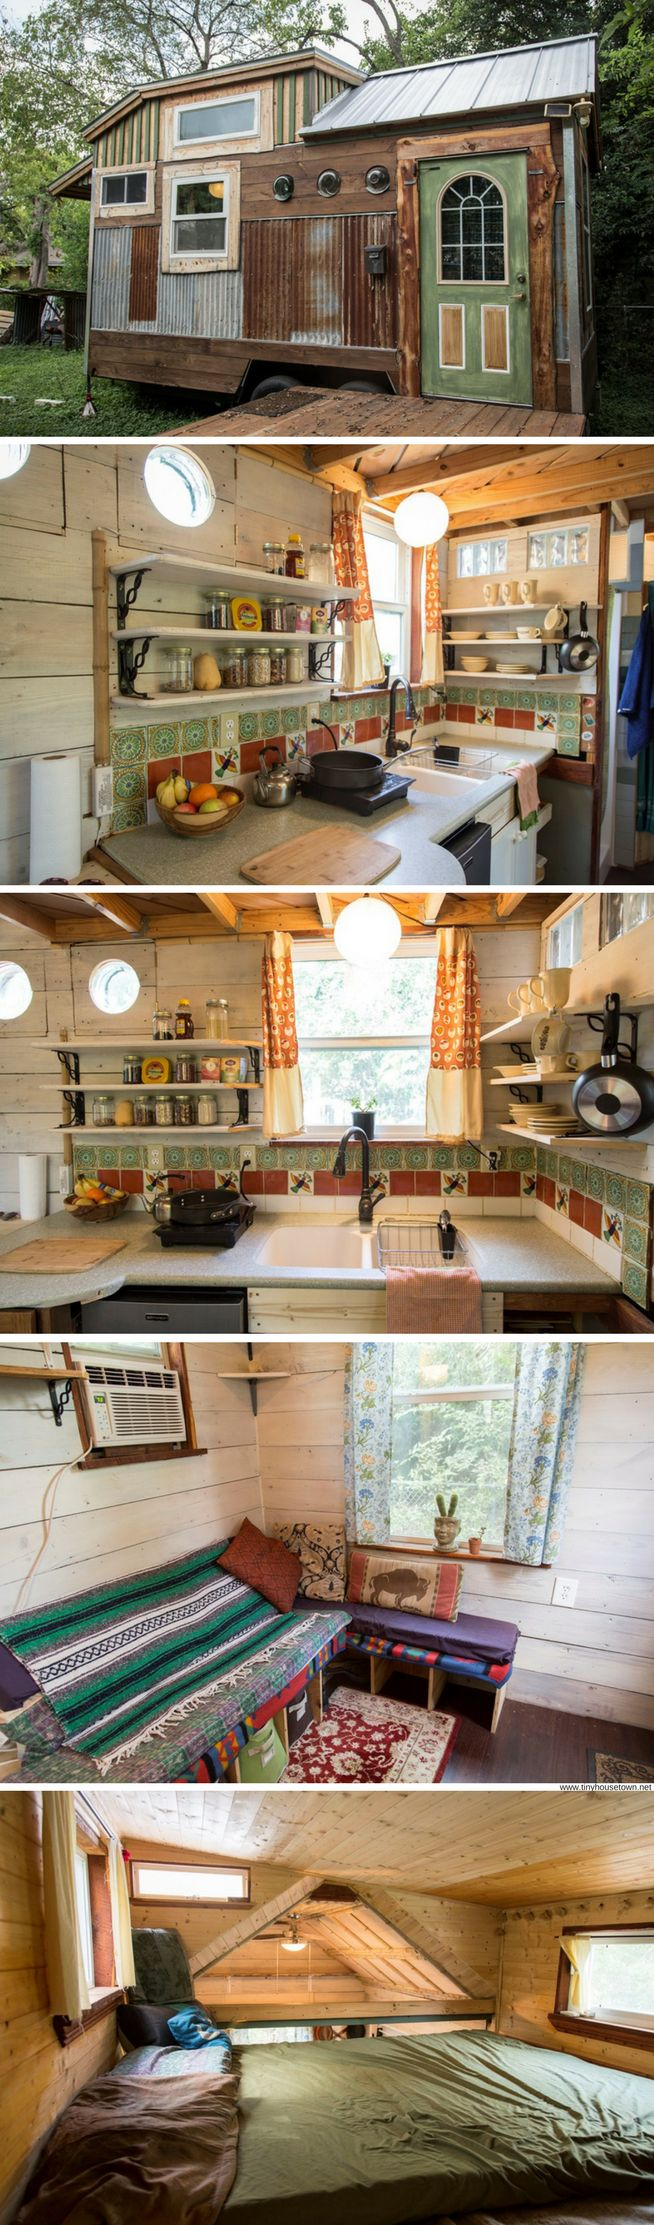 The Cedar Haven tiny house (200 sq ft) this ones my favorite